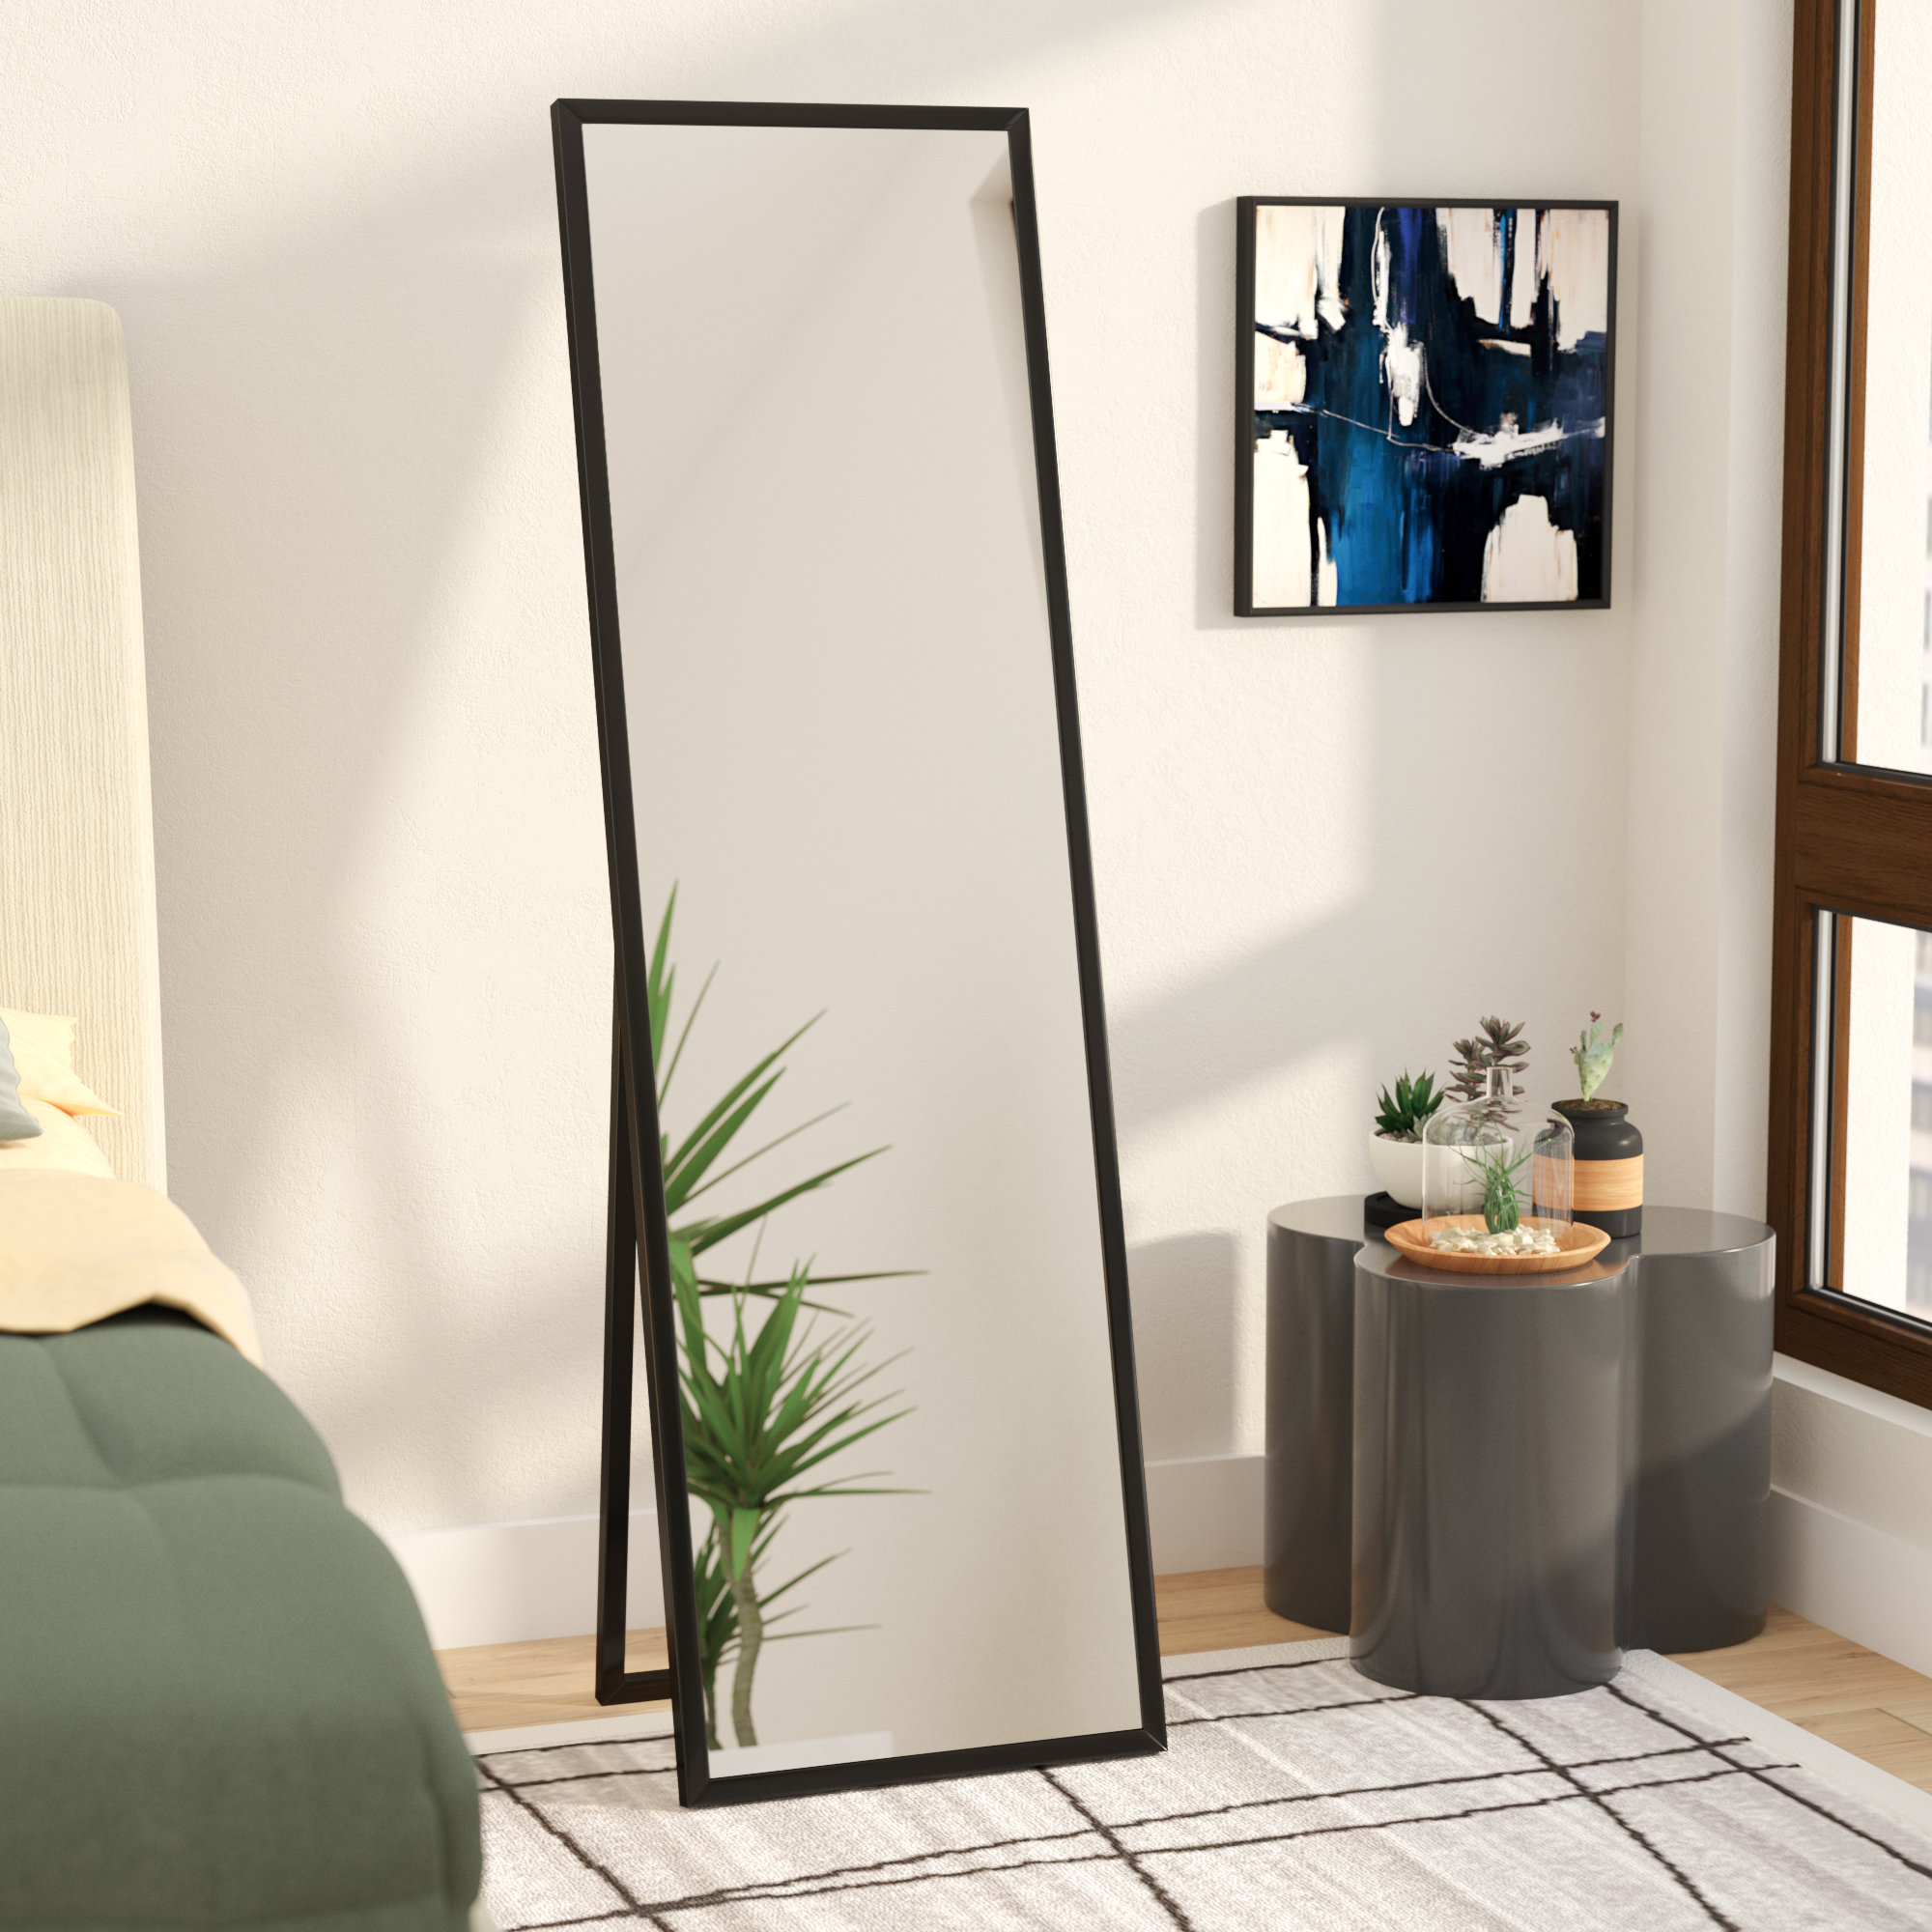 Modern & Contemporary Full Length Mirrors Throughout Most Recently Released Mcgary Free Standing Floor Modern & Contemporary Full Length Mirror (Gallery 11 of 20)